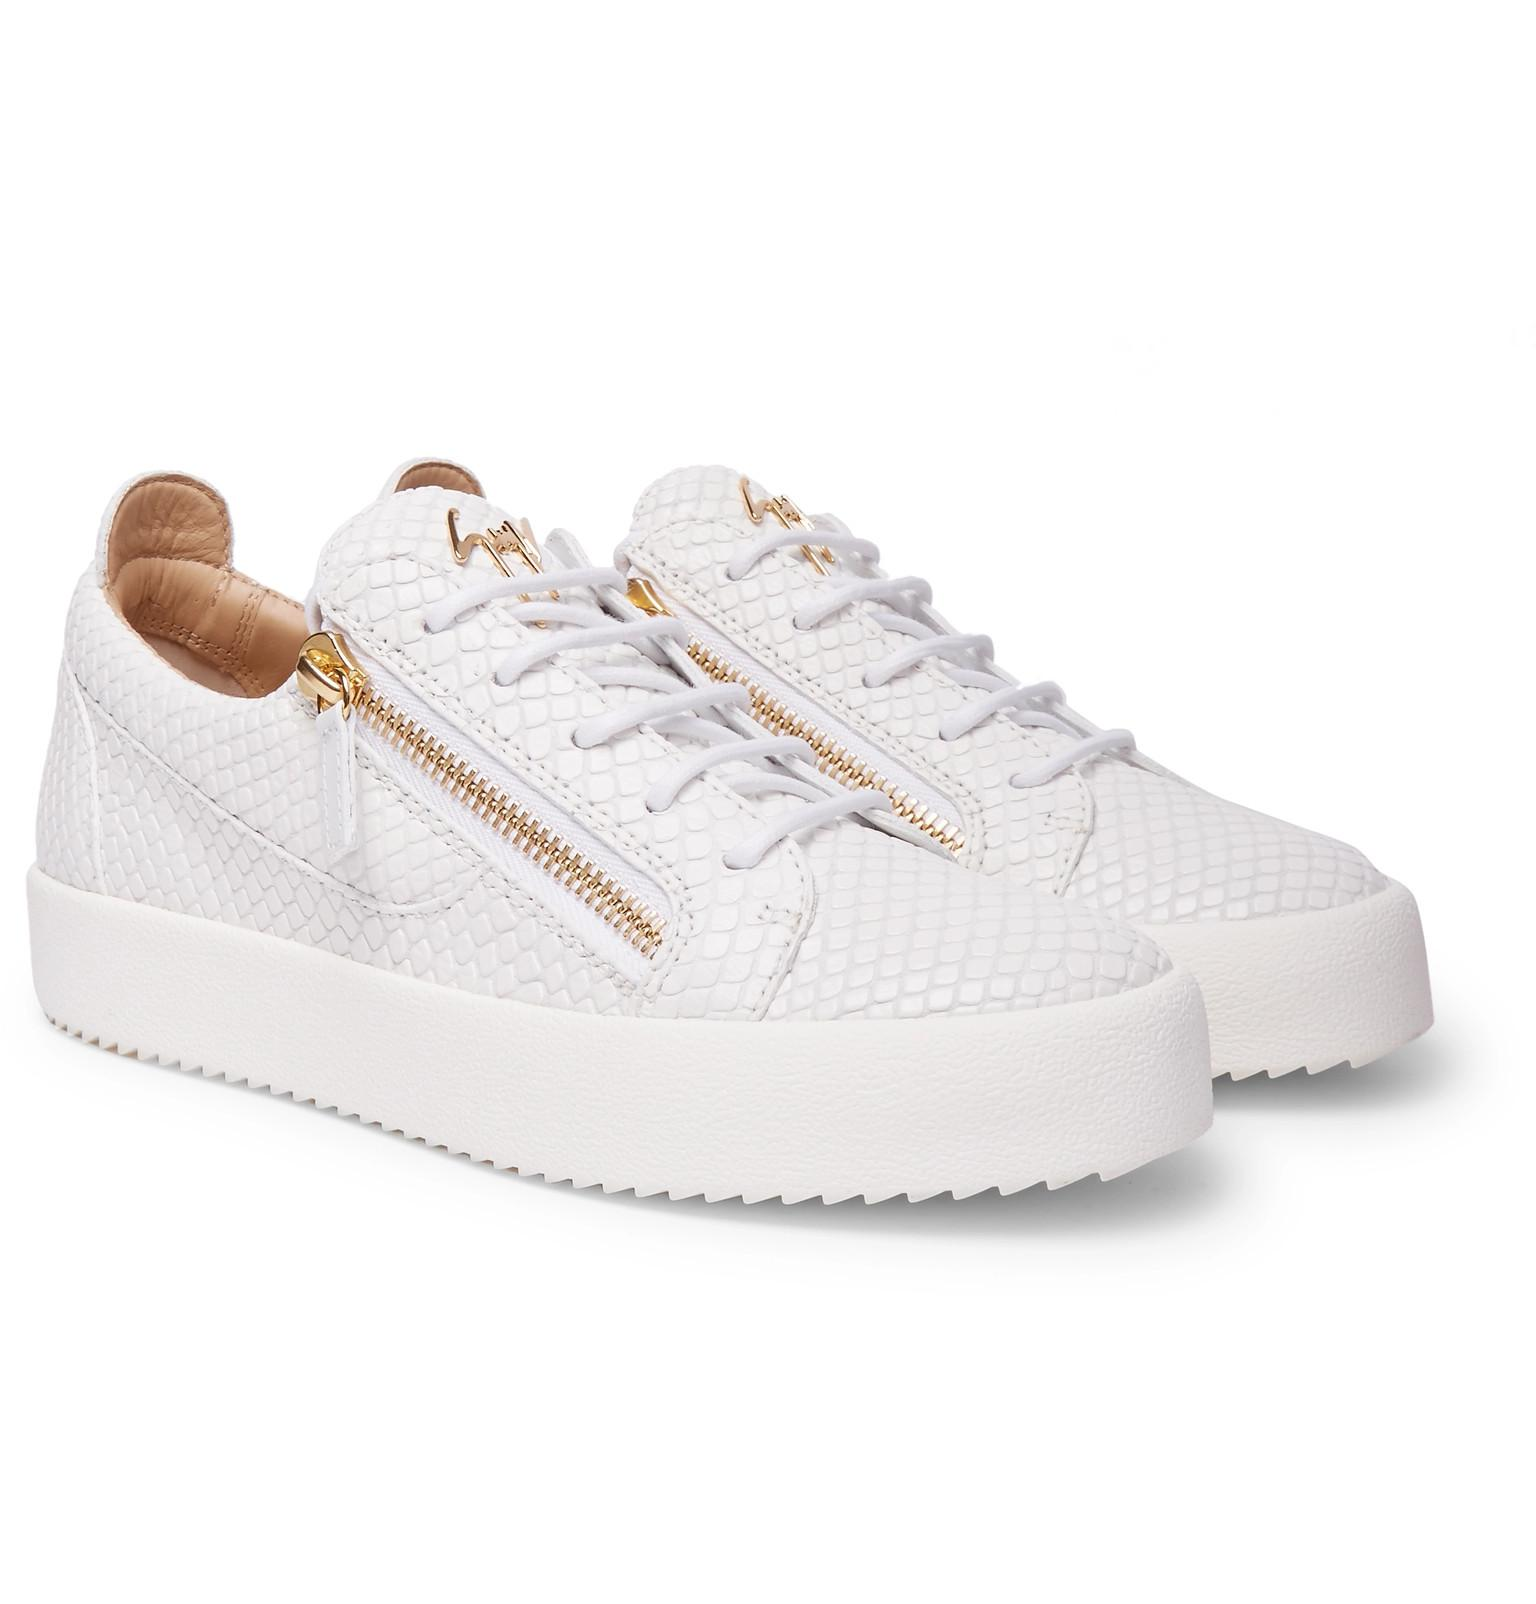 027e0da83b3a2 Giuseppe Zanotti Logoball Snake-effect Leather Sneakers in White for ...